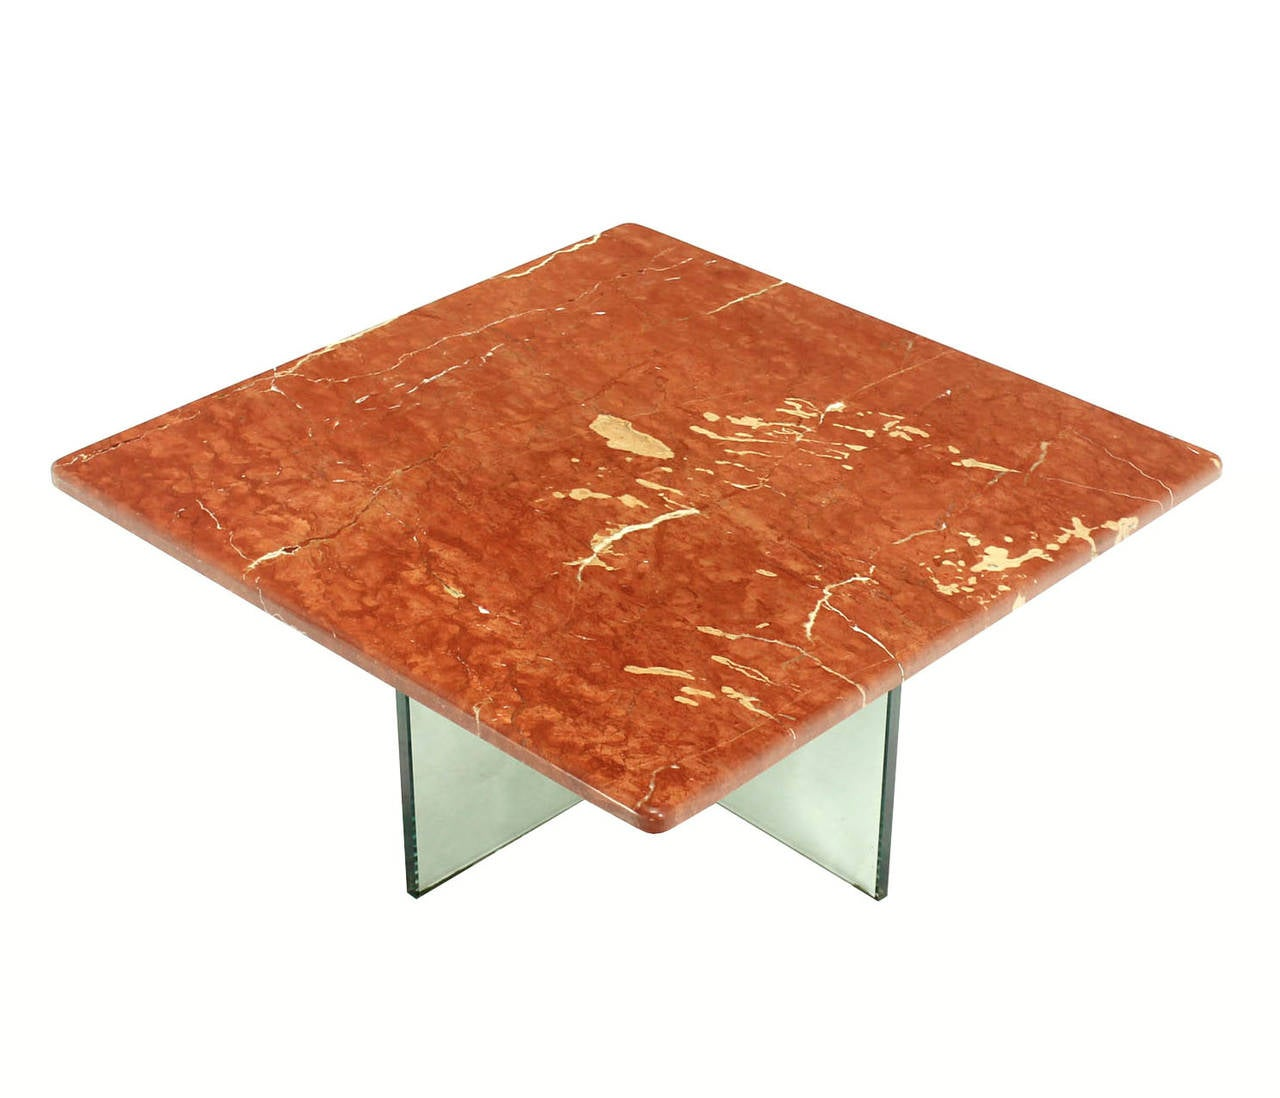 Coffee Table Bases For Marble Tops: Glass X Cross Base Coffee Table W/ Marble Top For Sale At